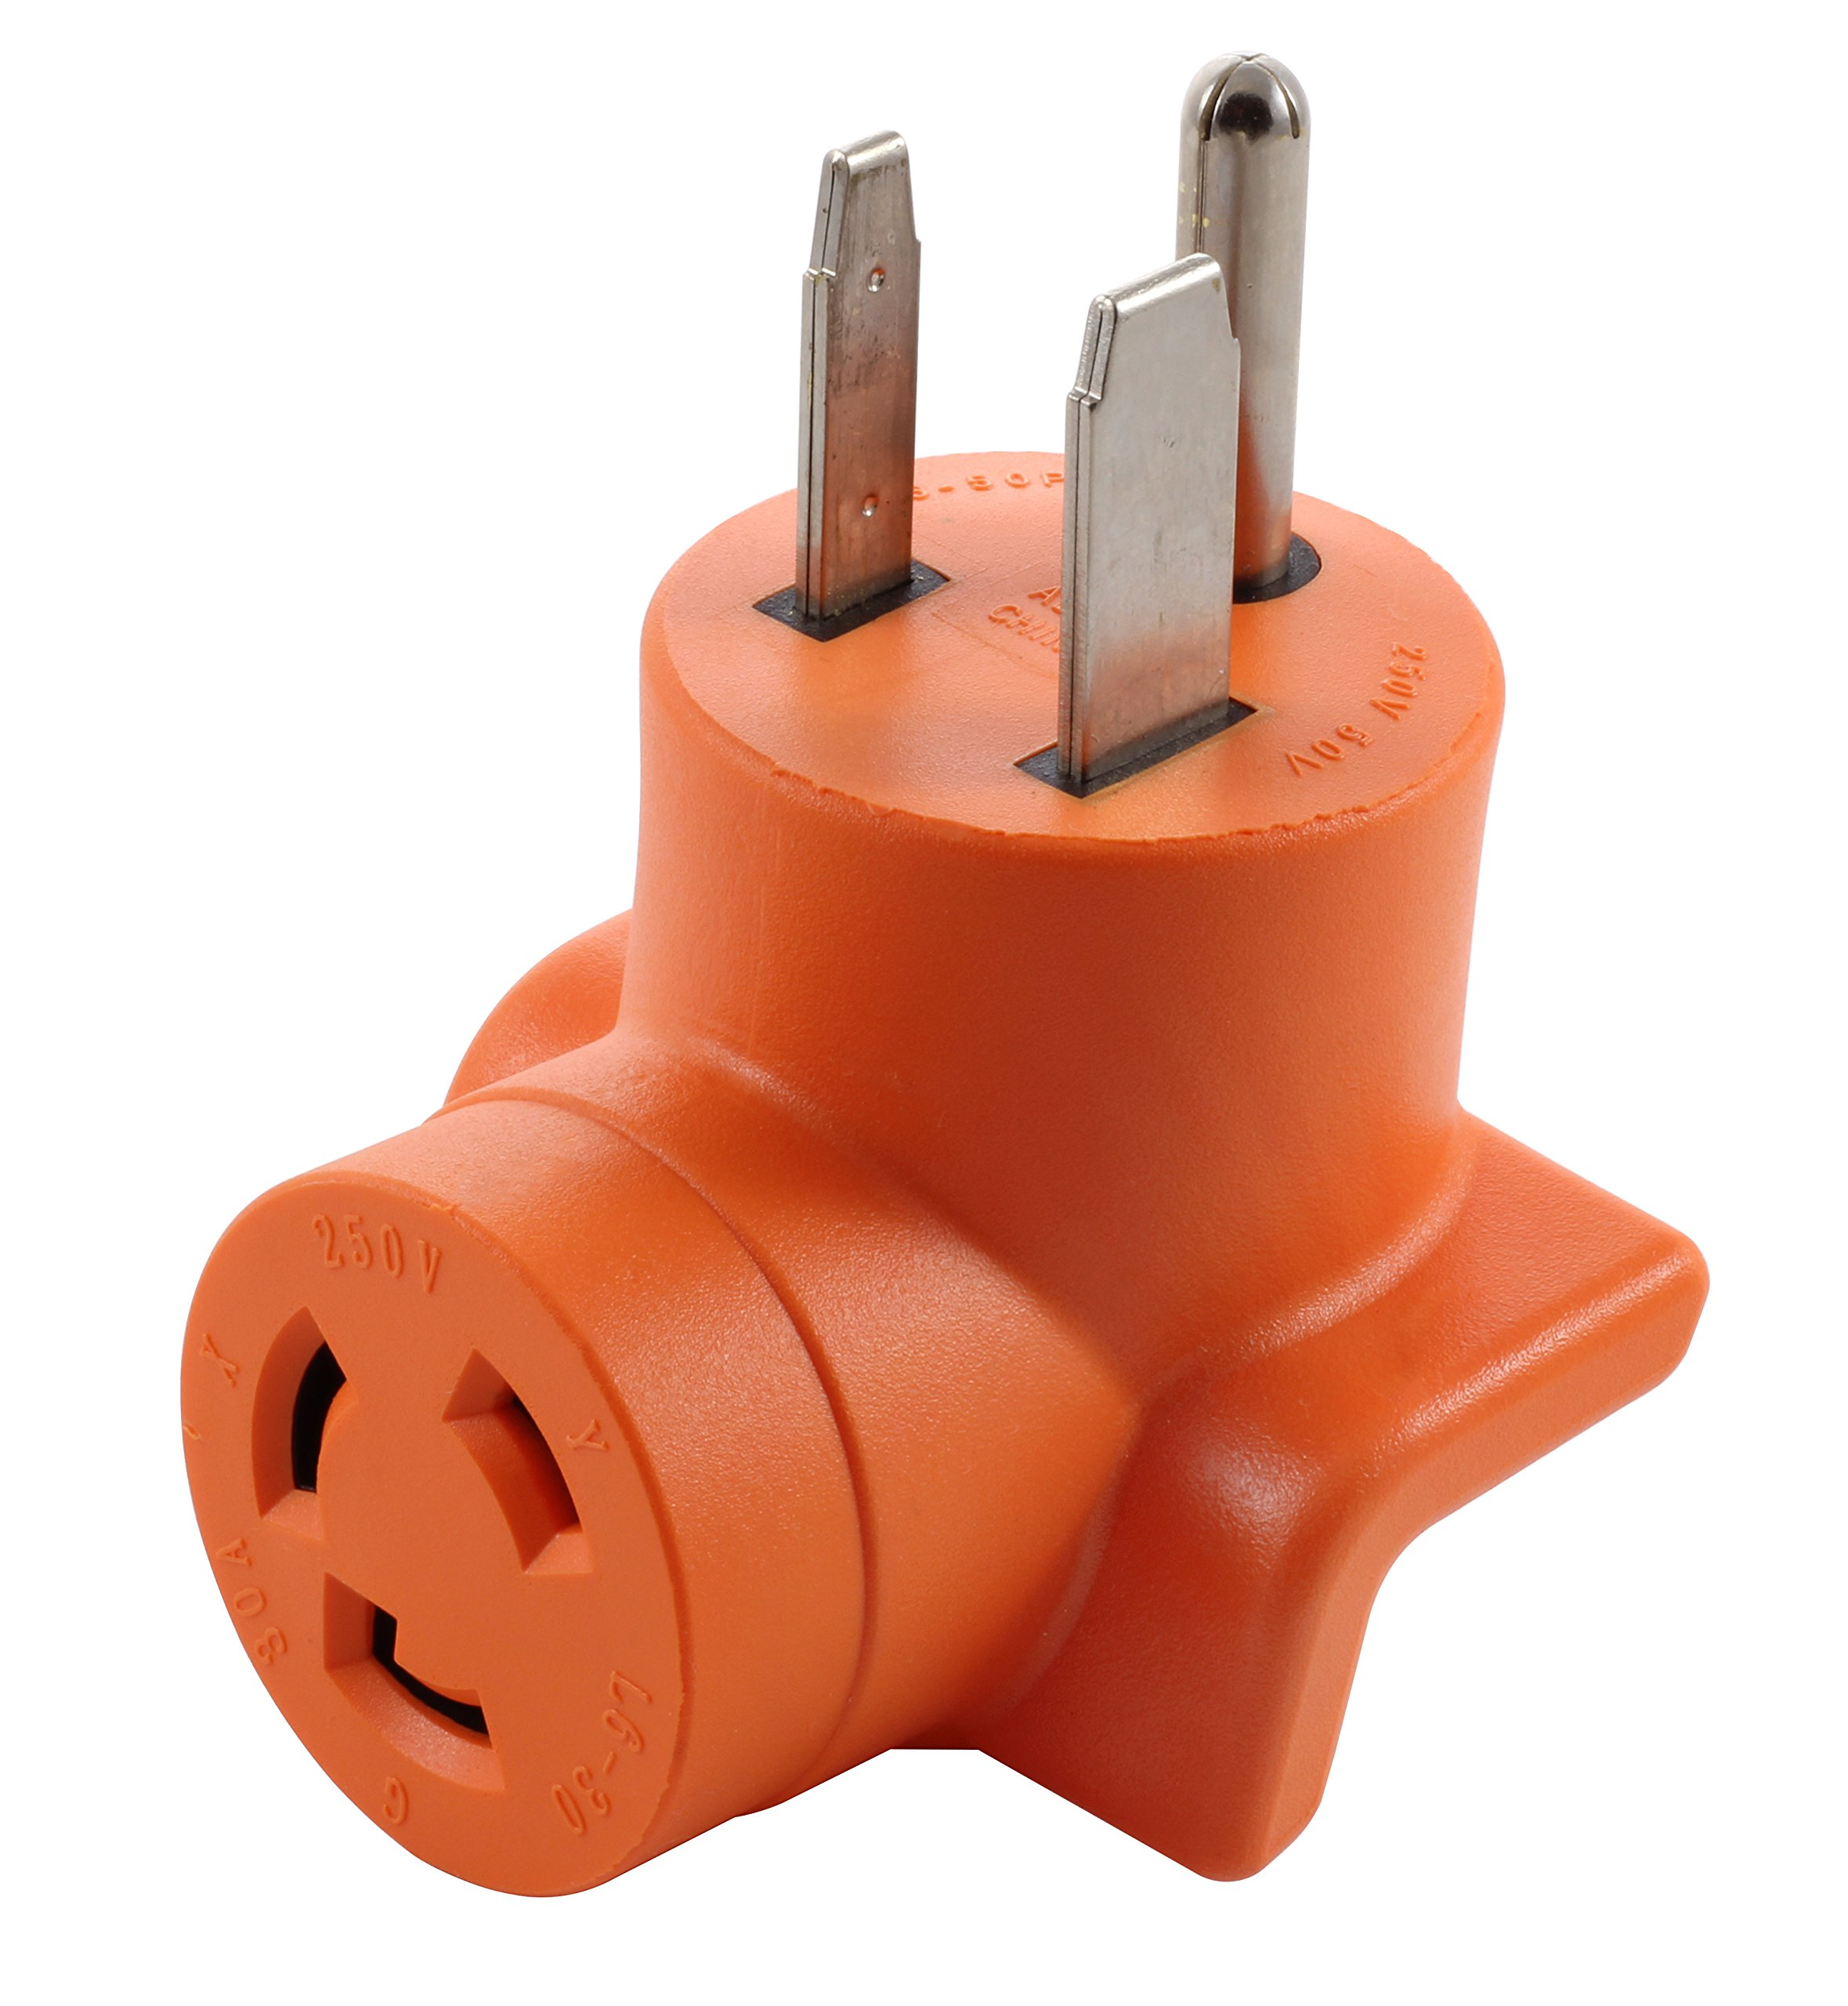 AC WORKS [AD650L630] Welder 6-50P Plug to L6-30R 3-Prong 30 Amp 250 Volt Locking Female Adapter